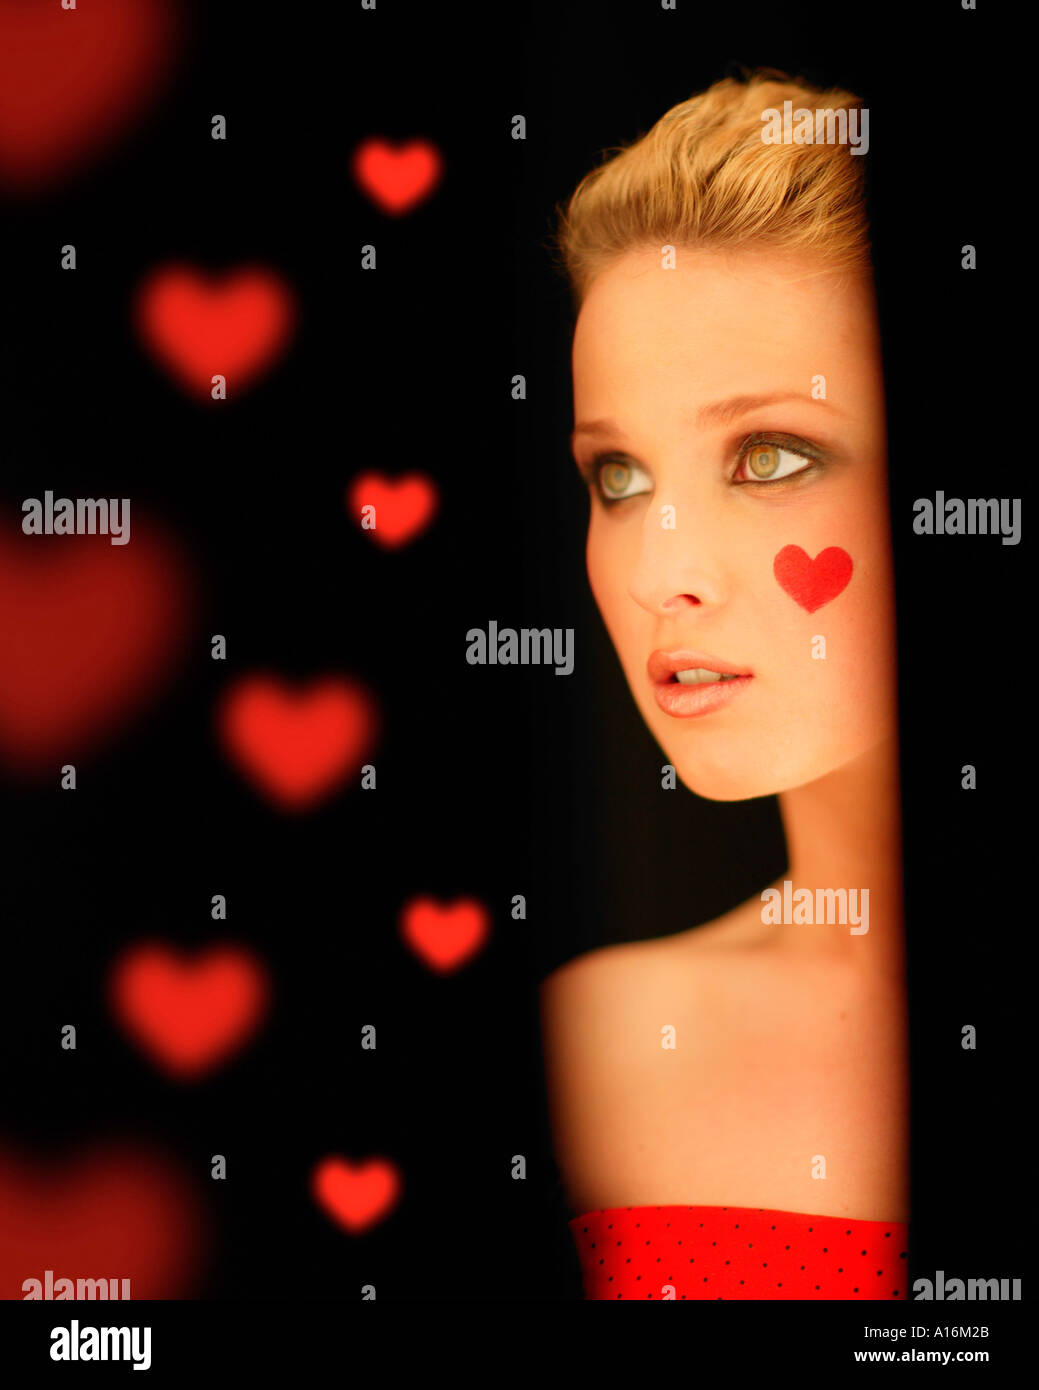 Portrait of young woman 18, 19, 20, 21, 20-24, 24-29, 30-34, years old with red heart painted on her cheek Stock Photo